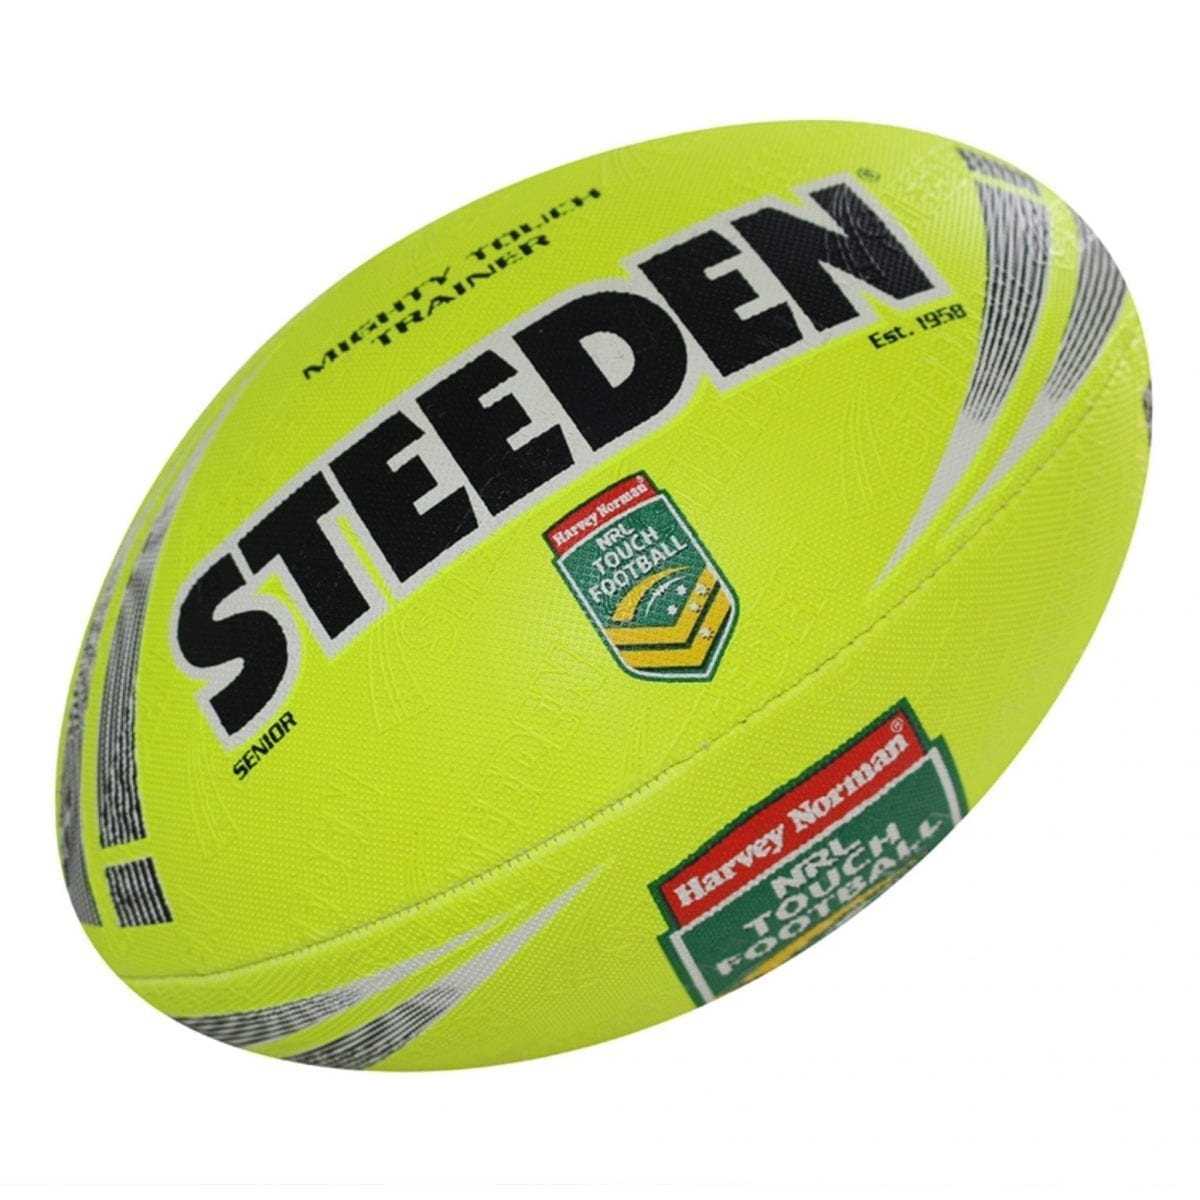 Steeden Mighty Touch Junior Football Touch Footballs Buy Online